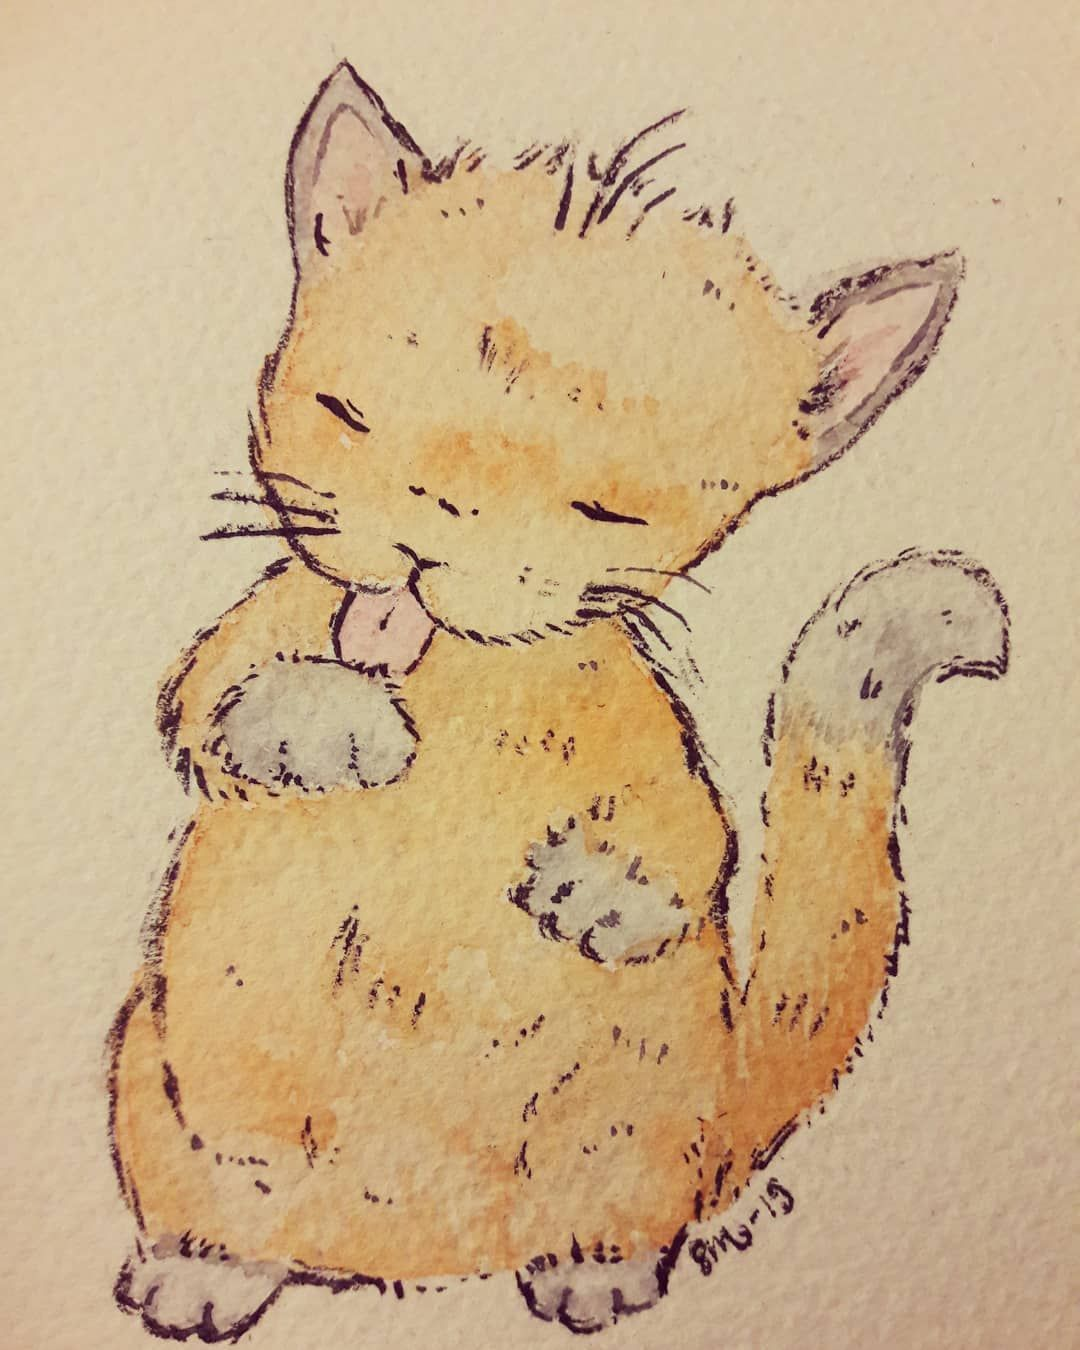 Kitty Still A Lot To Learn About Ink Usage But Slowly Getting Somewhere Ink Watercolor Ink Indiaink Kitty Cat Kitten Watercolor India Ink Cats Kitten